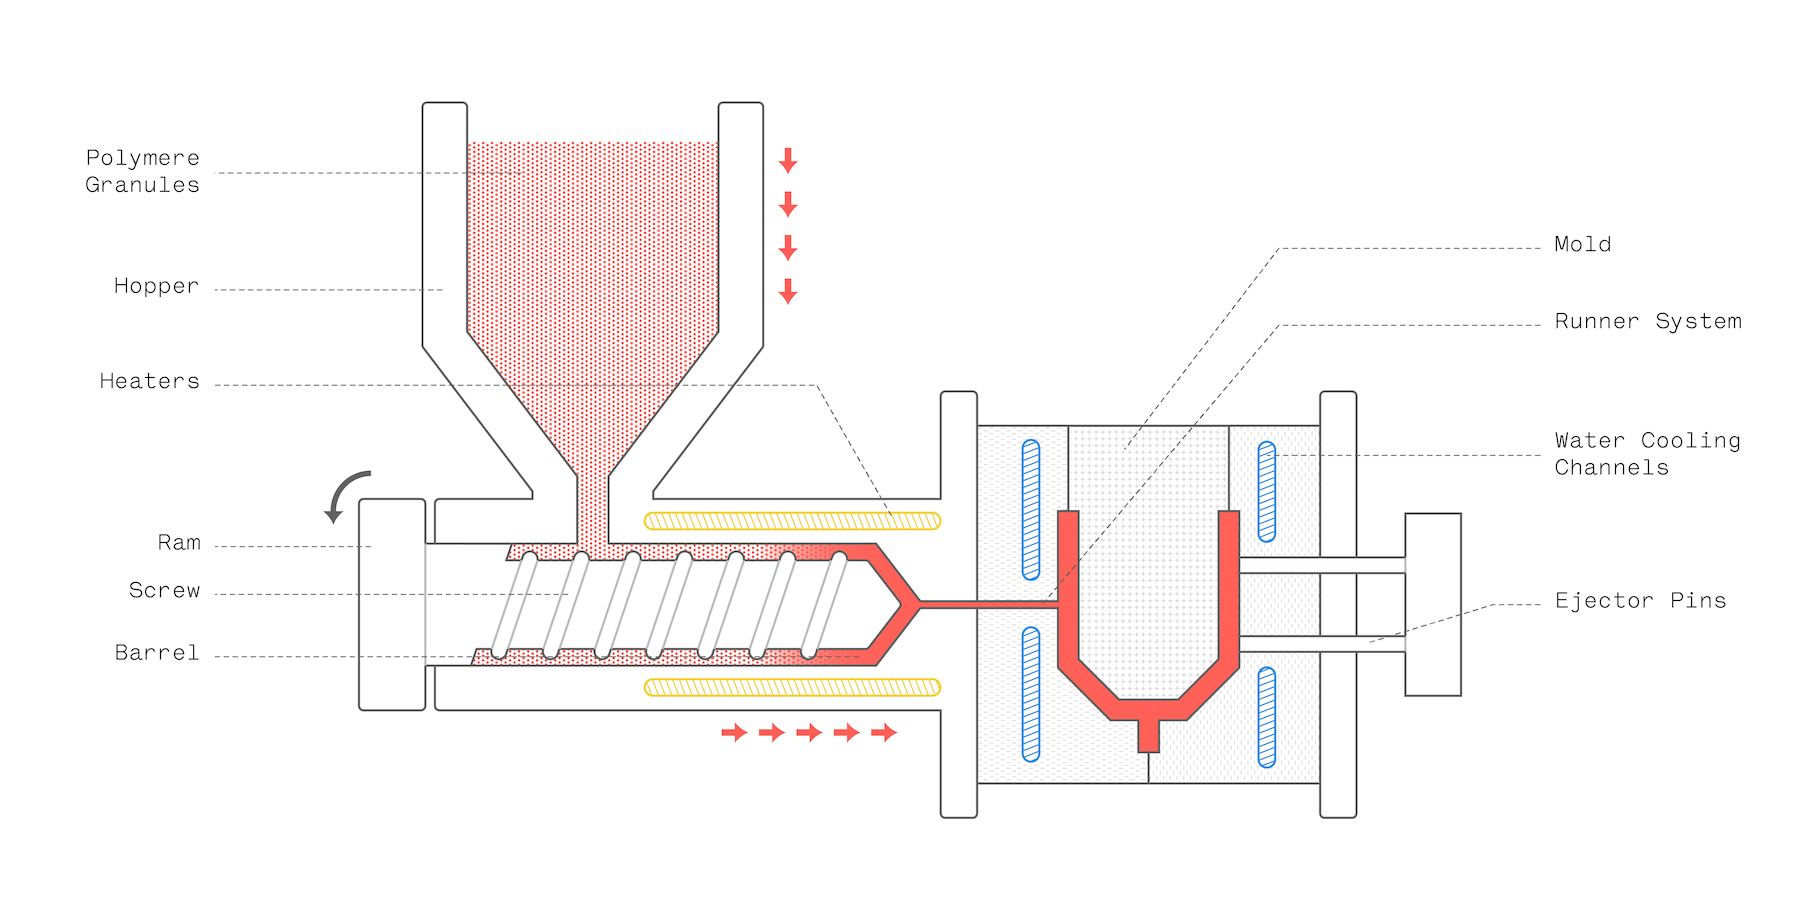 Schematic of a typical Injection Molding system